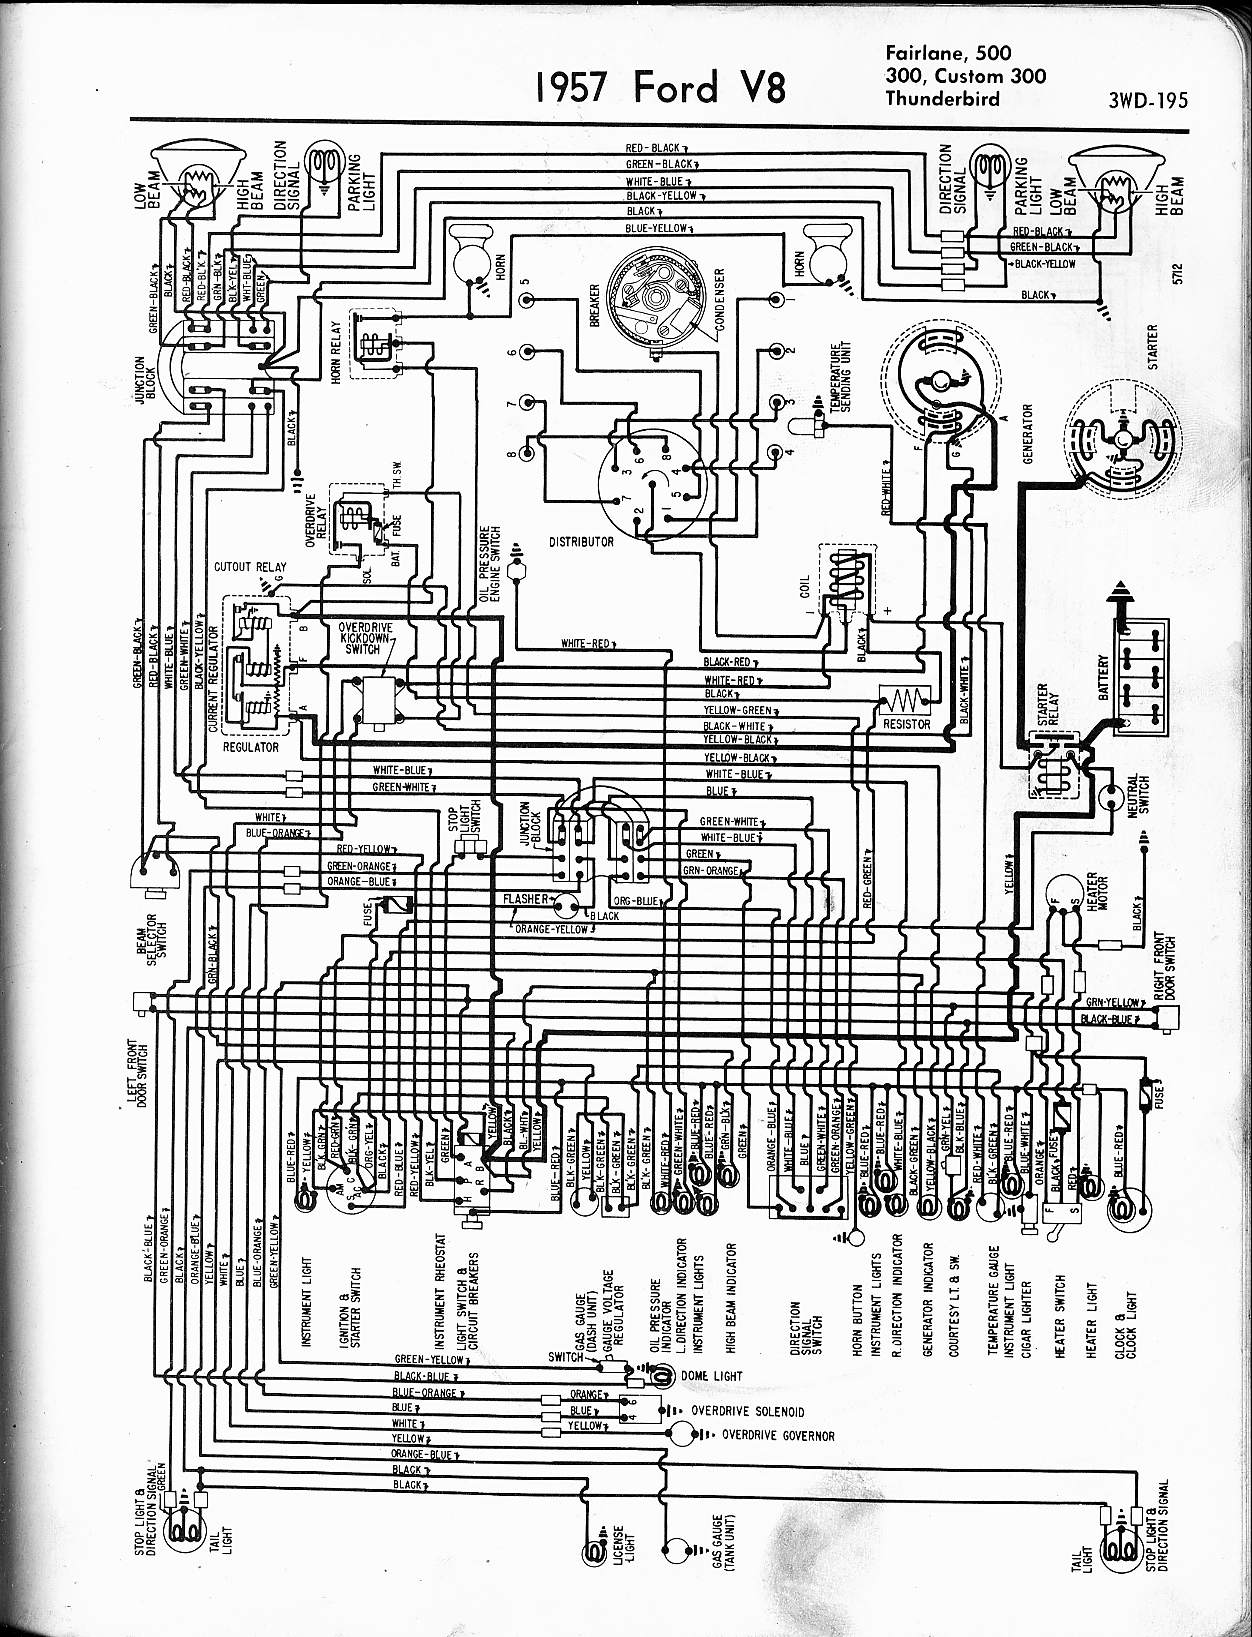 95 Pontiac Grand Prix Wiring Diagram Worksheet And 1997 1960 Schematic Electrical Schematics Rh Landingchurchseattle Com